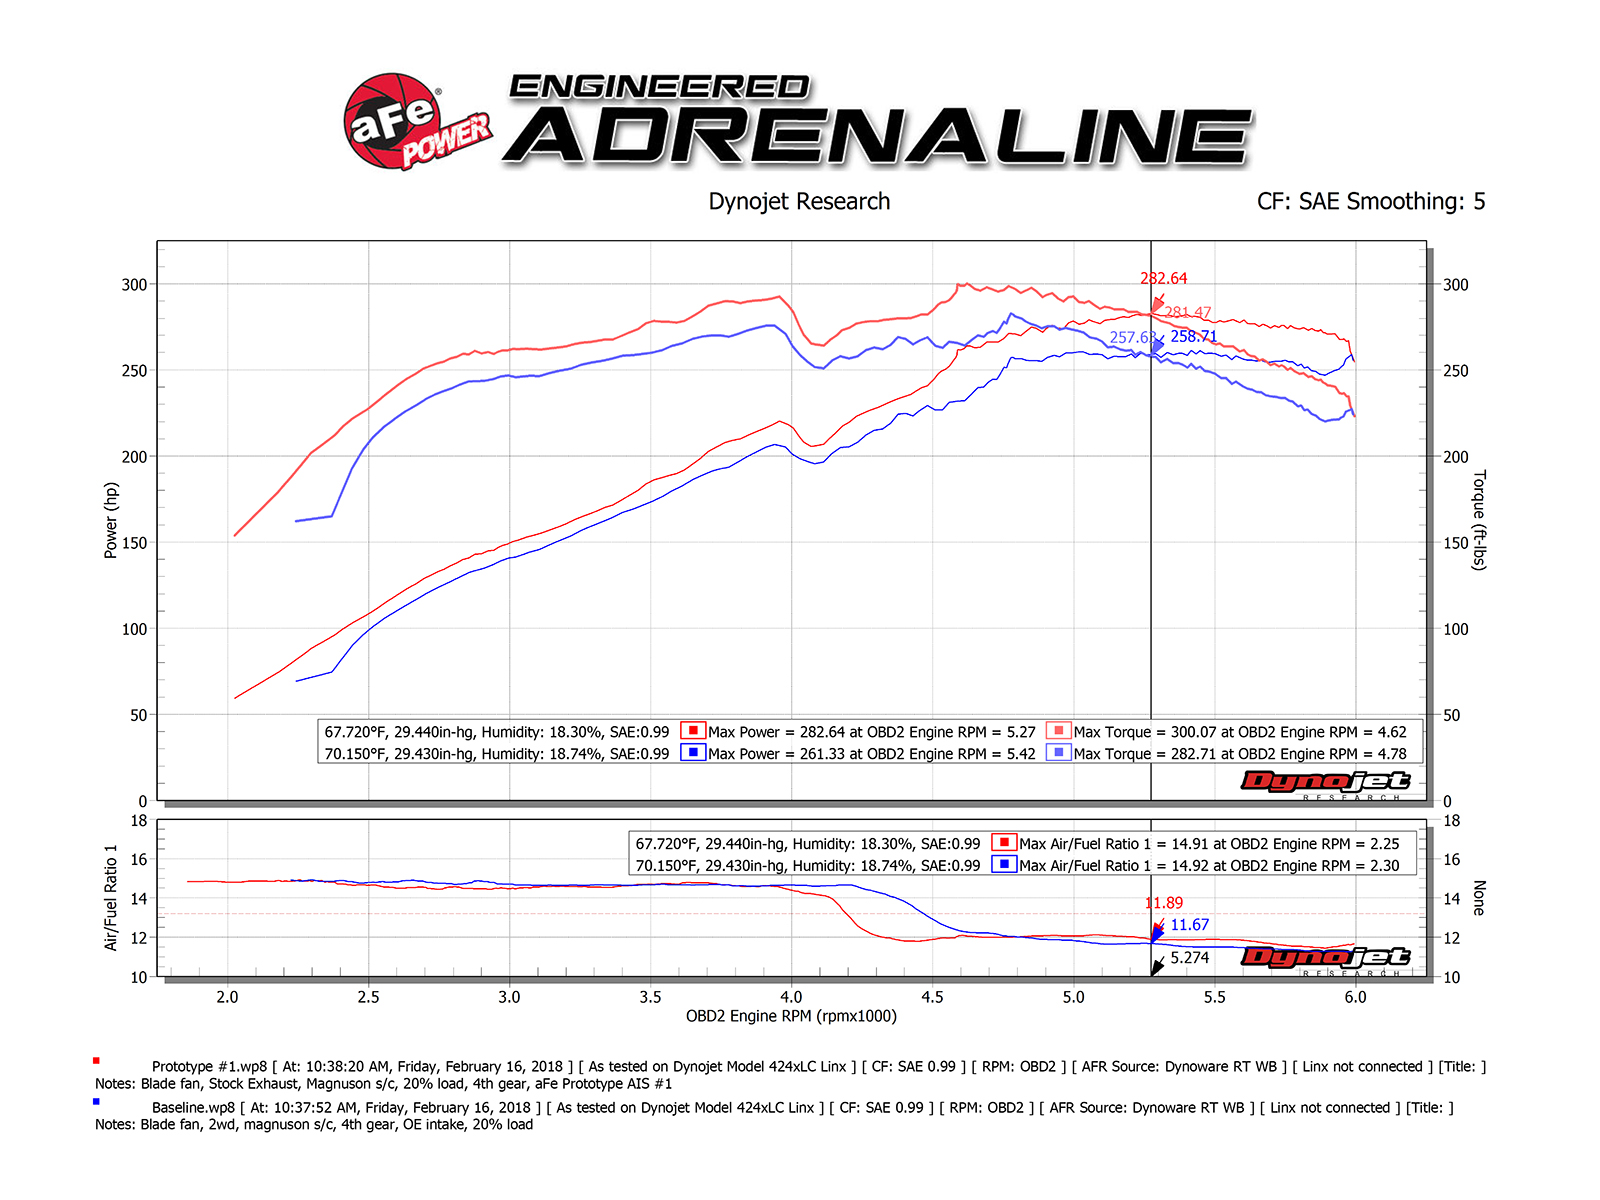 Momentum Gt Pro Guard 7 Cold Air Intake System Afe Power 6 4l Engine Diagram Free Download Dyno Chart